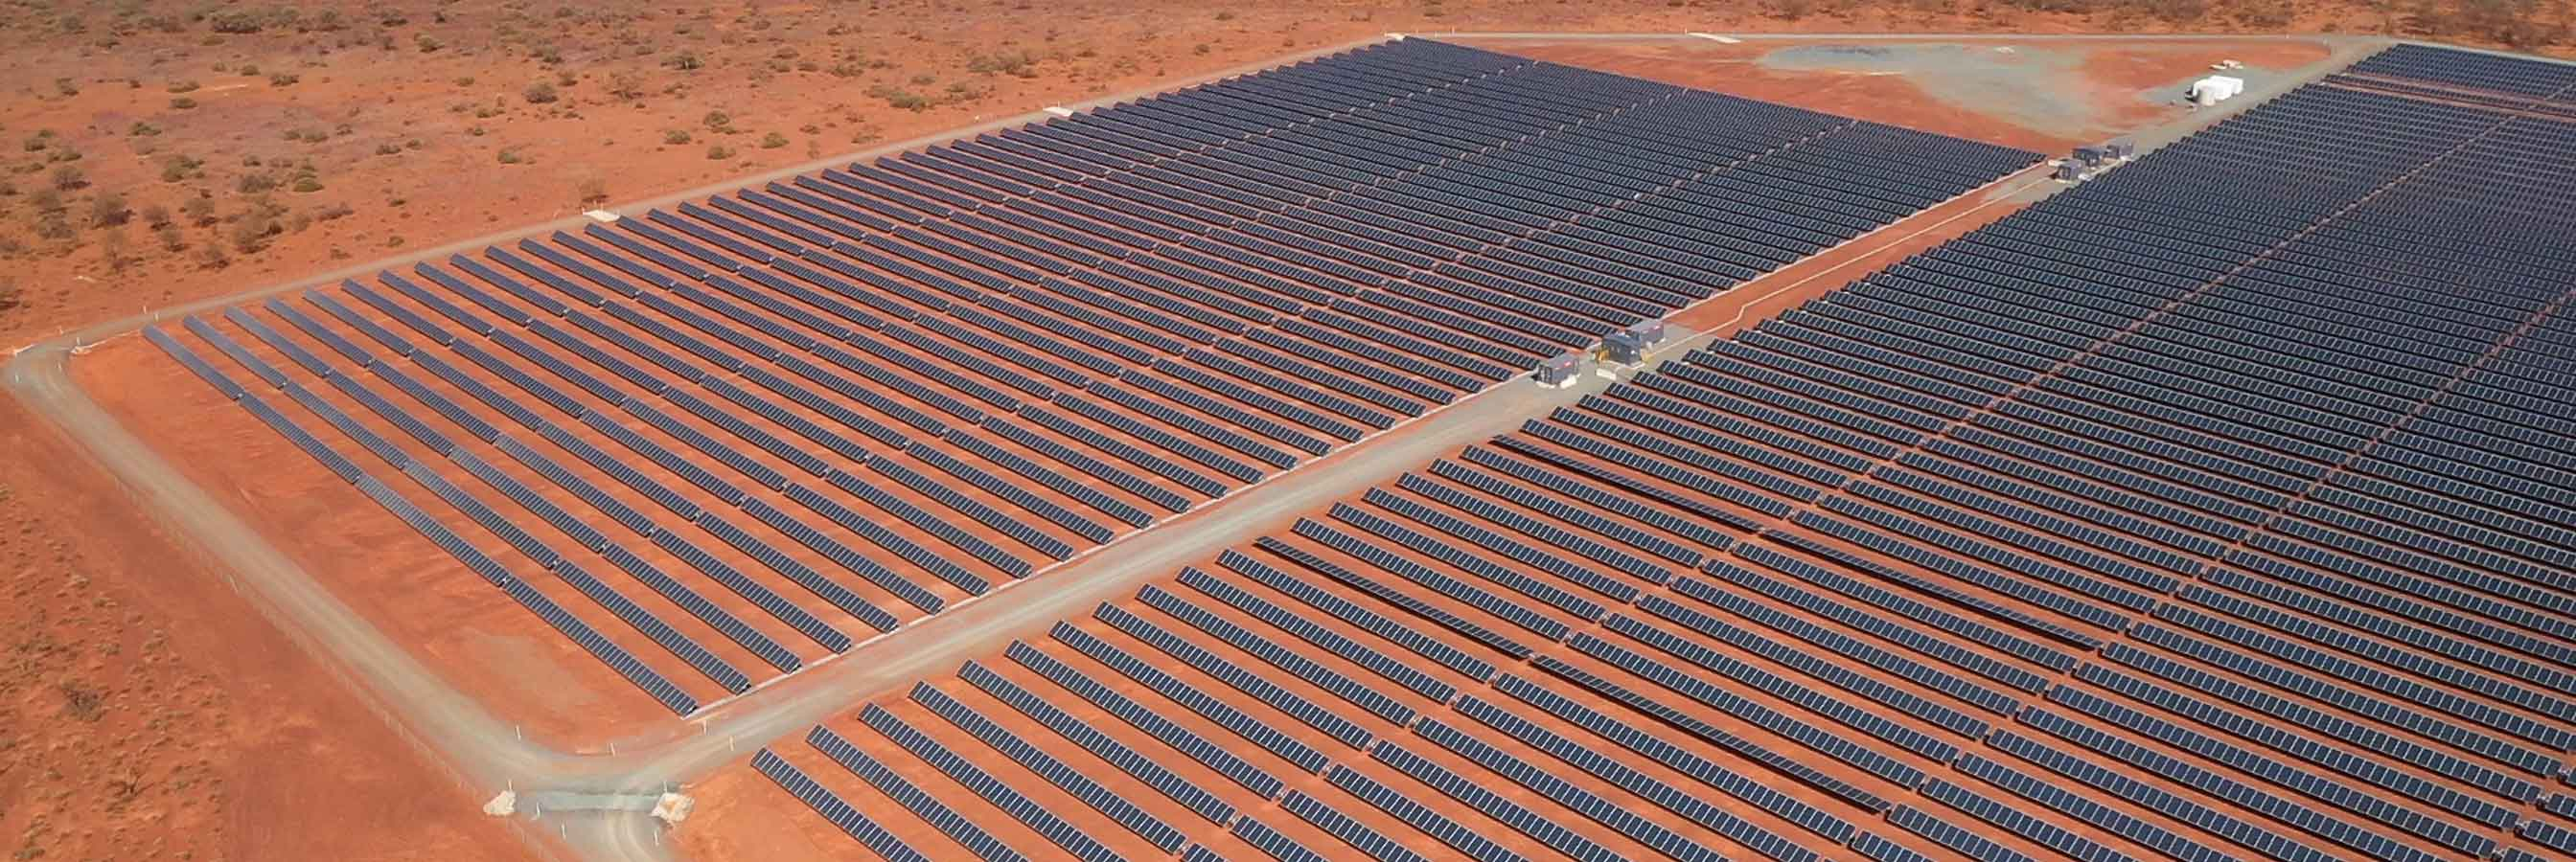 Rows and rows of solar panels located in a remote, hardpan desert-like locale